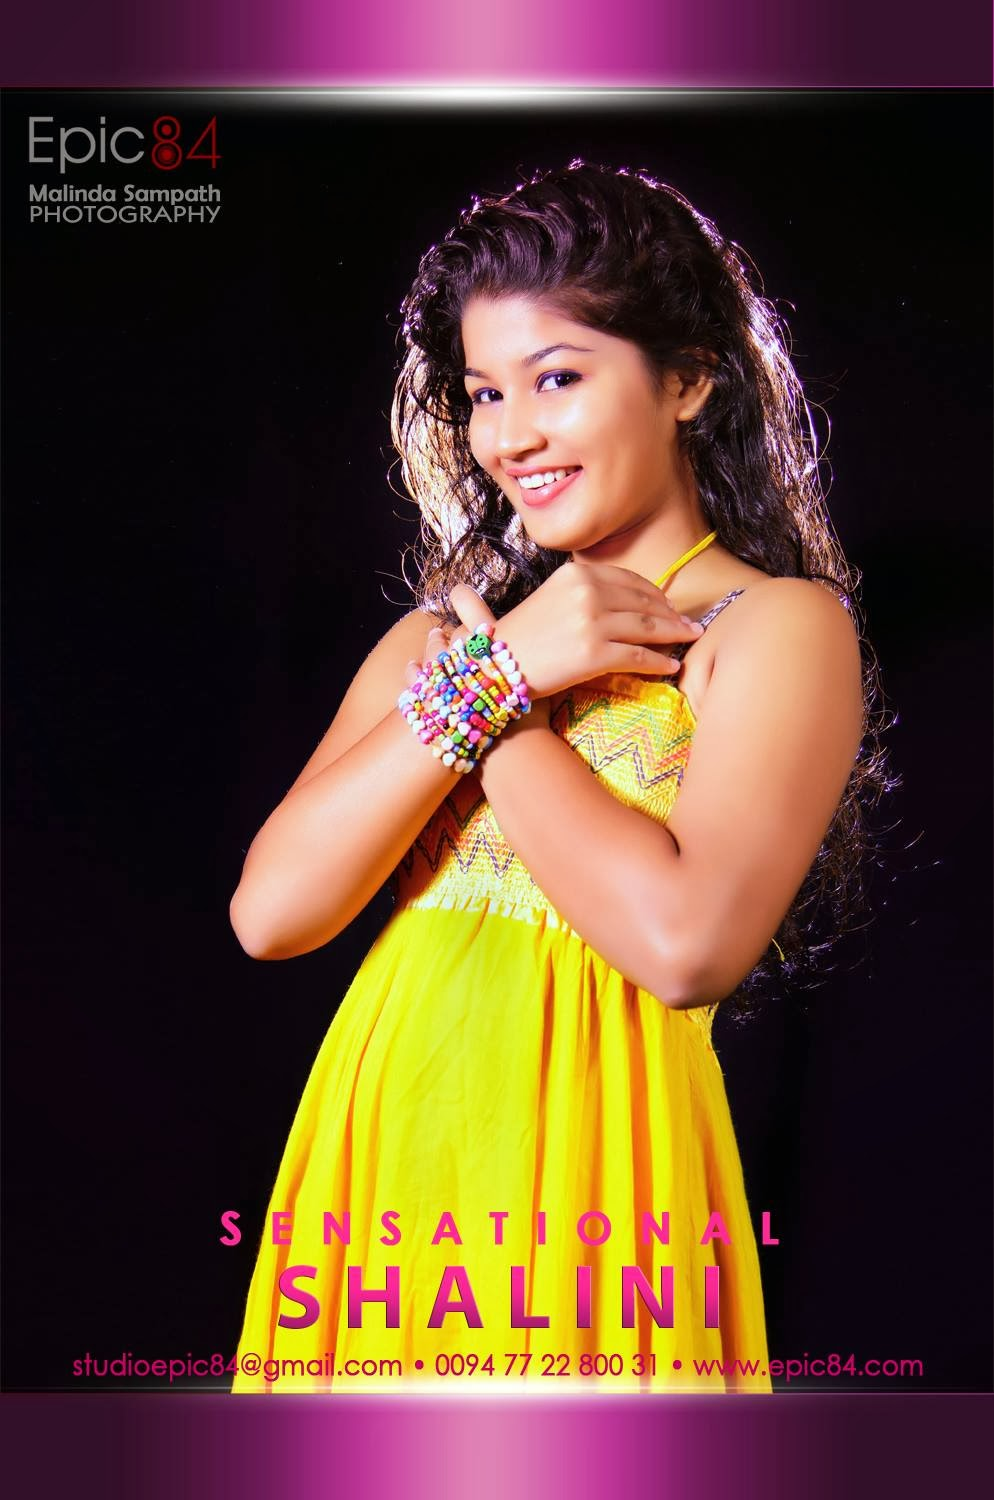 Malinda Sampath Photography